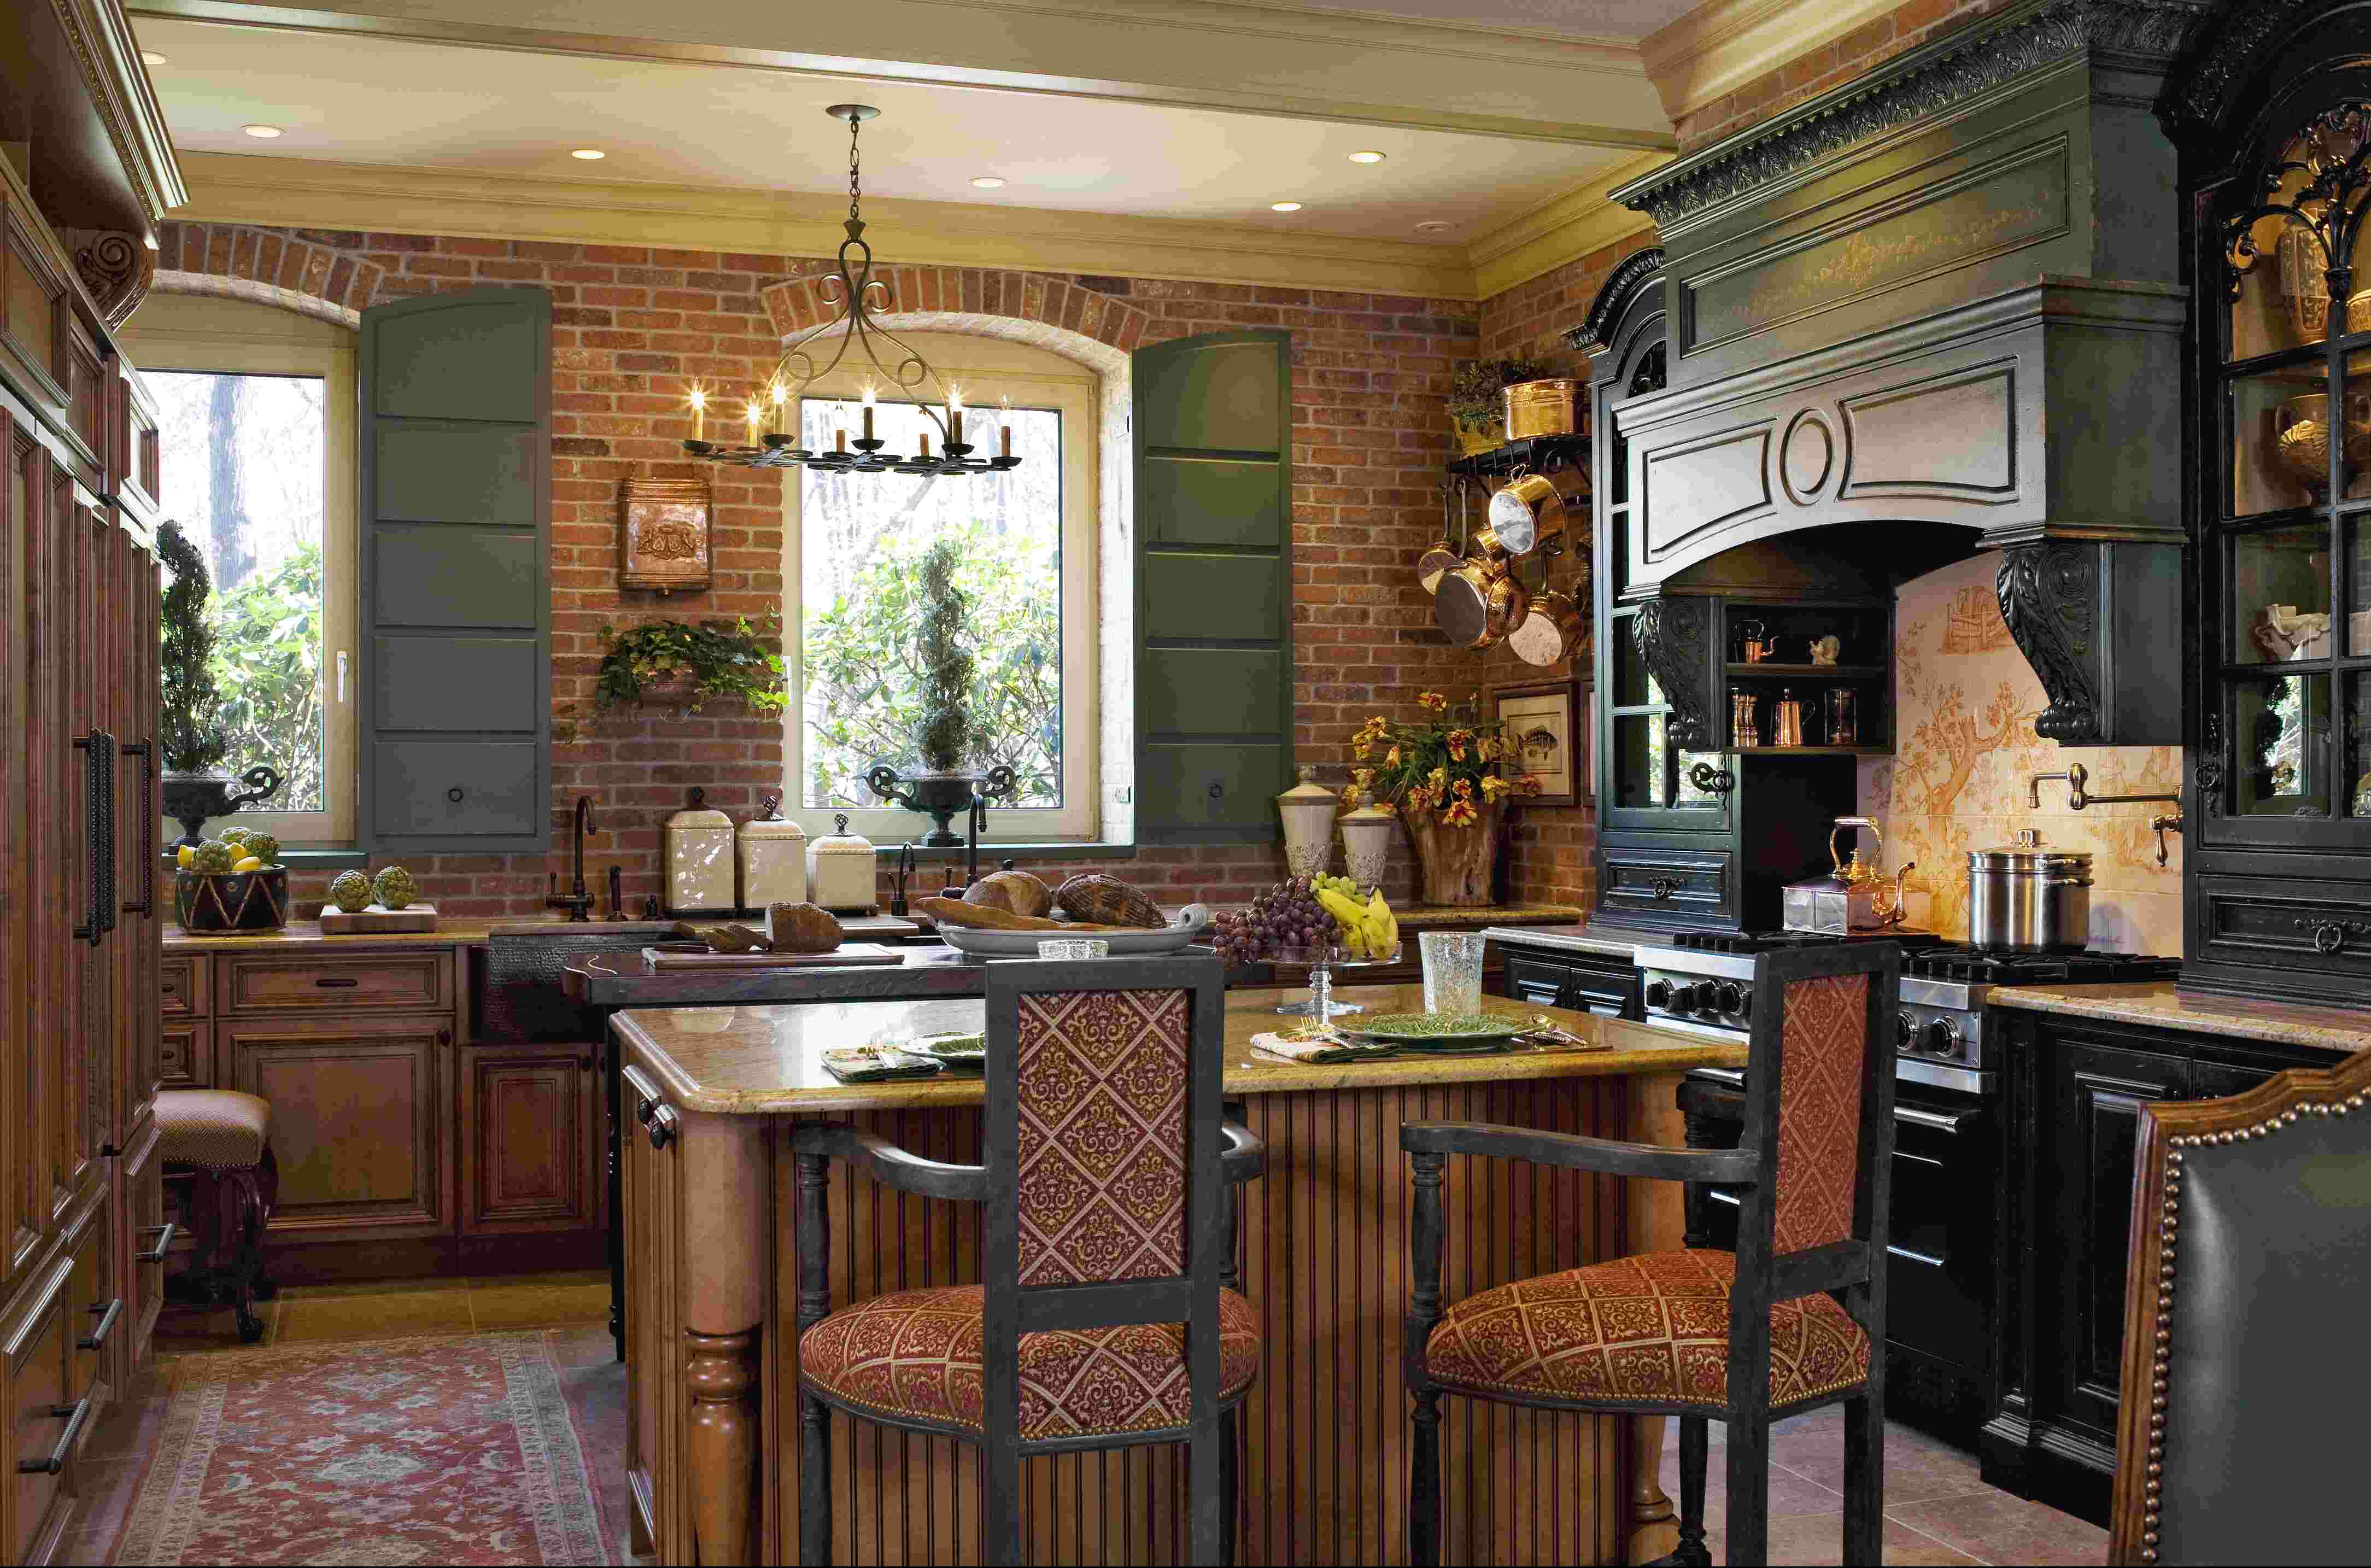 Wilson kelsey design wins 10 awards in 2010 - Country style kitchen cabinets design ...